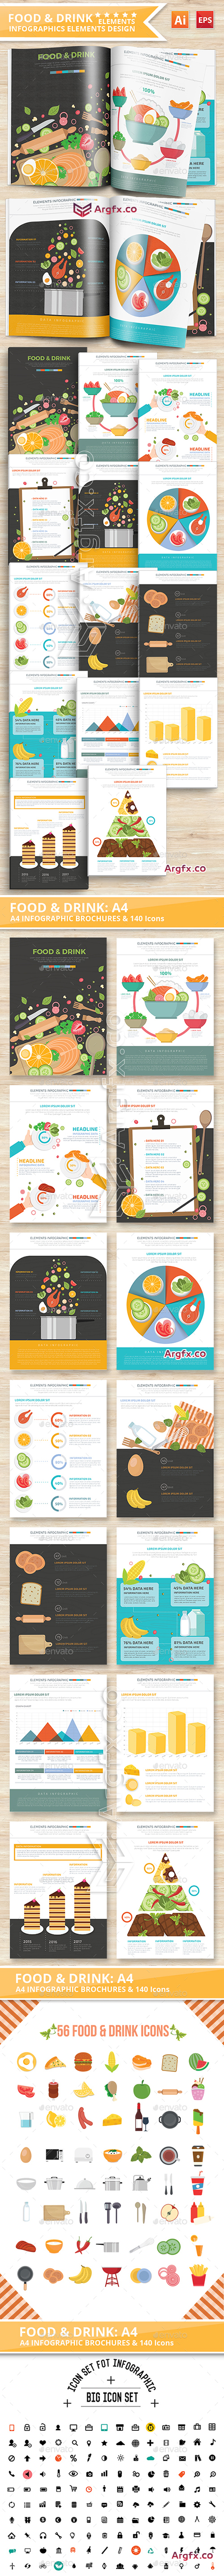 Food & Drink infographic Template Design